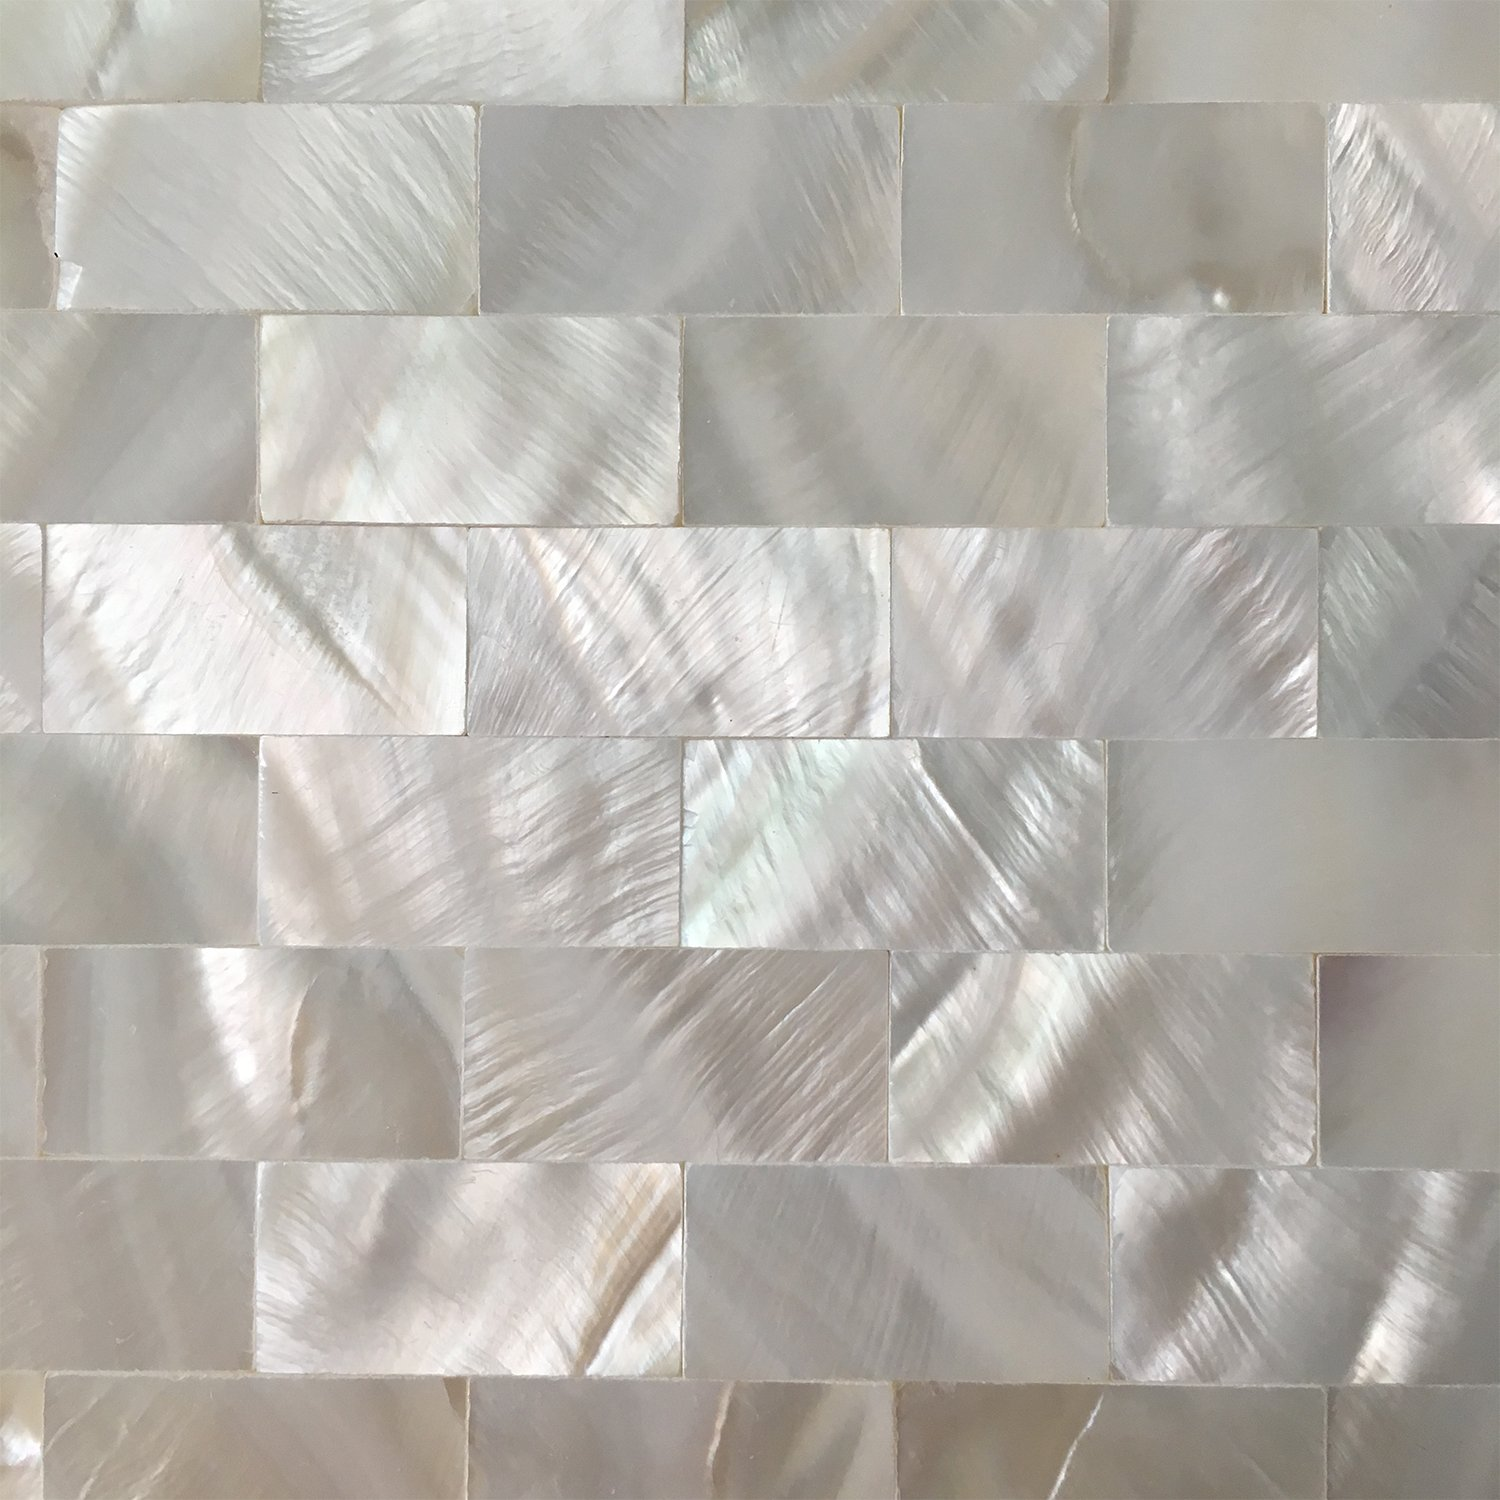 Art3d 6-Pack Peel and Stick Mother of Pearl Shell Tile for Kitchen Backsplashes, 12'' x 12'' White Brick by Art3d